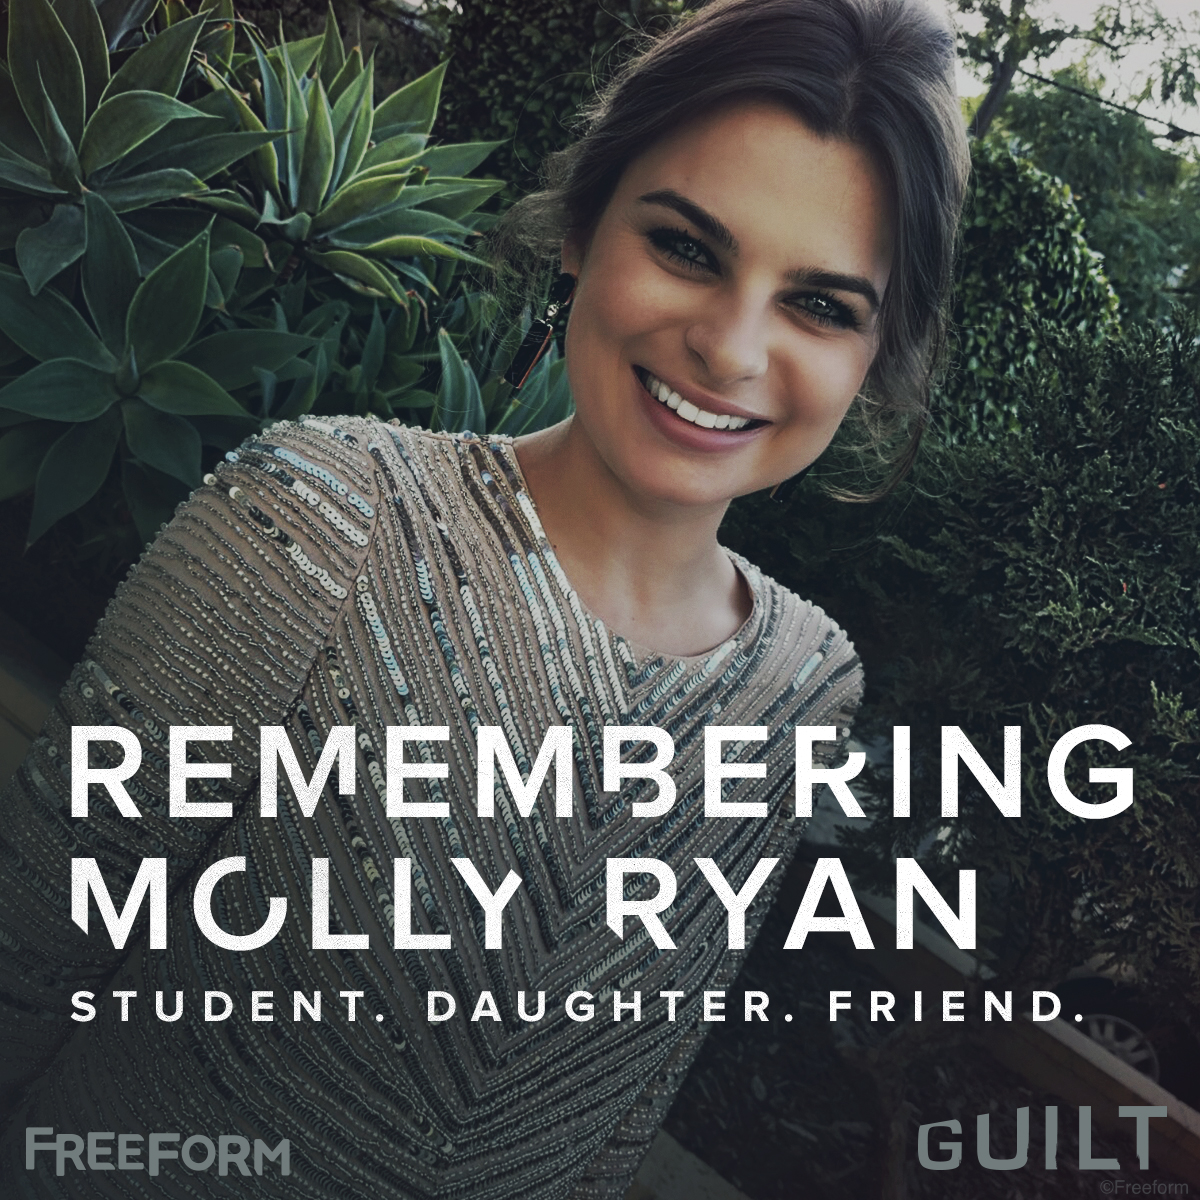 Guilt - Check Out These 3 Facts About Molly Ryan! - 1011